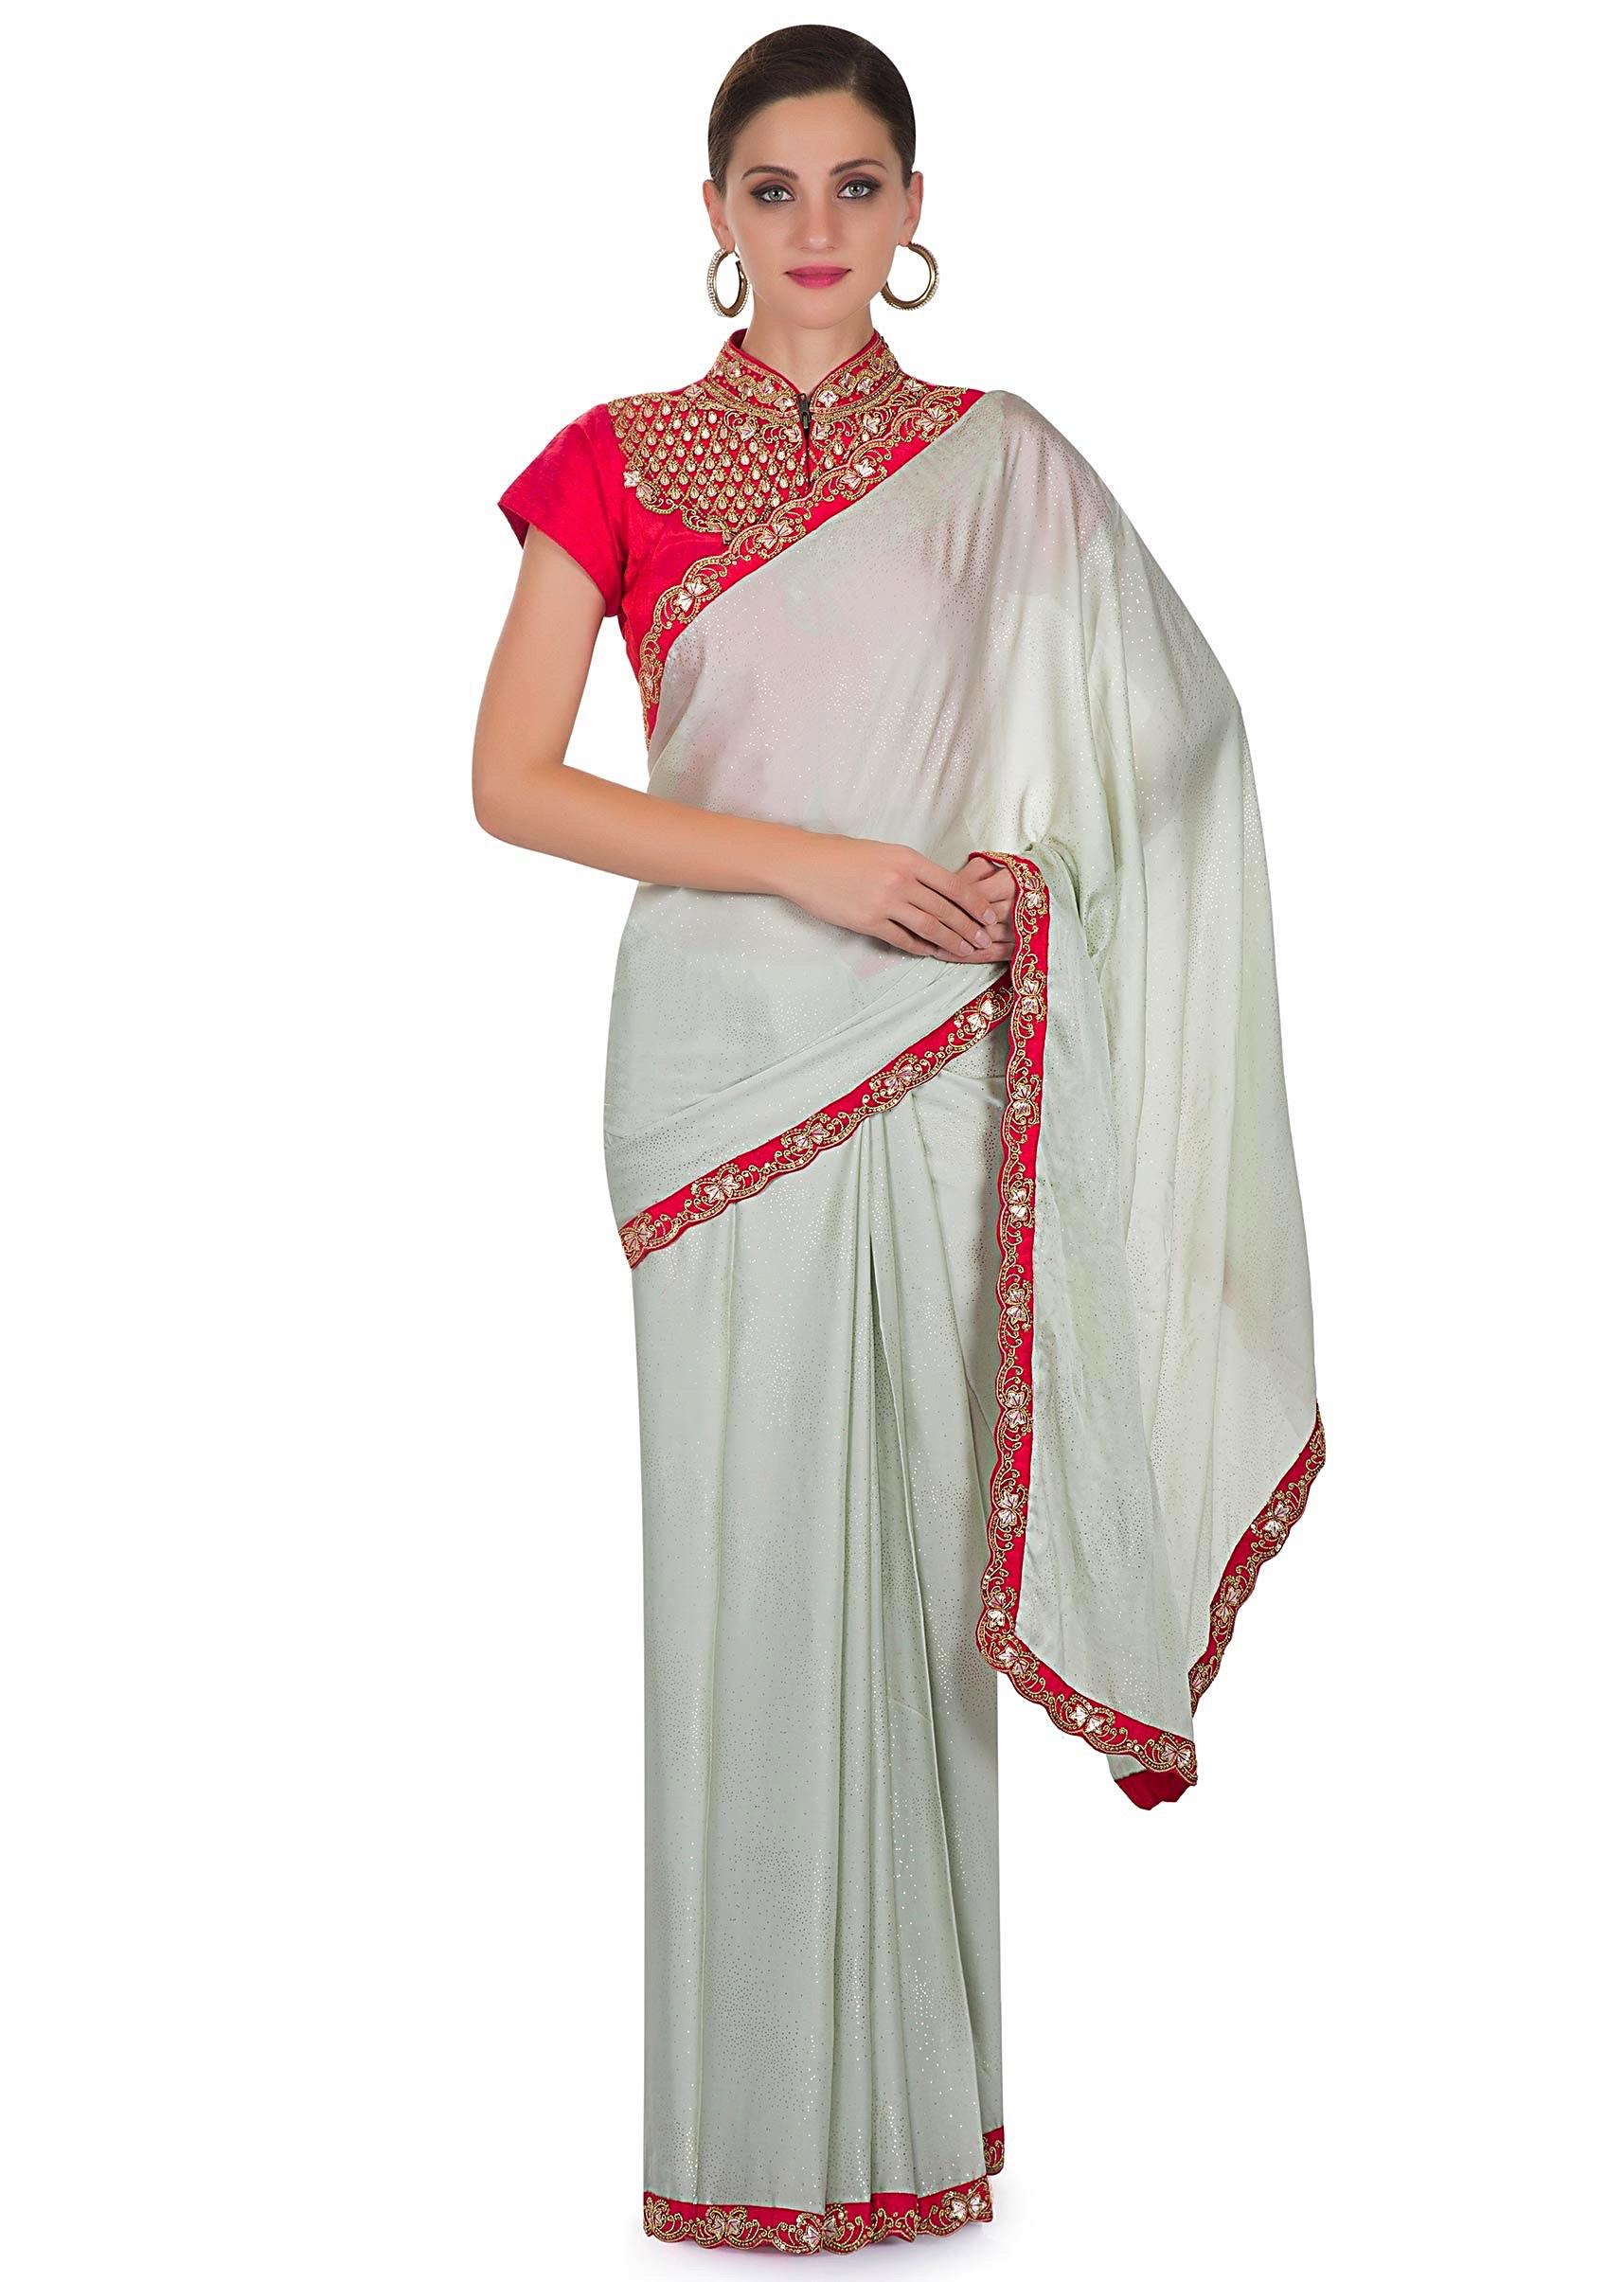 ced5676517d550 Mint Blue Satin Georgette Saree with Stitched Orange Raw Silk Blouse  Featuring Zari Work only on KalkiMore Detail